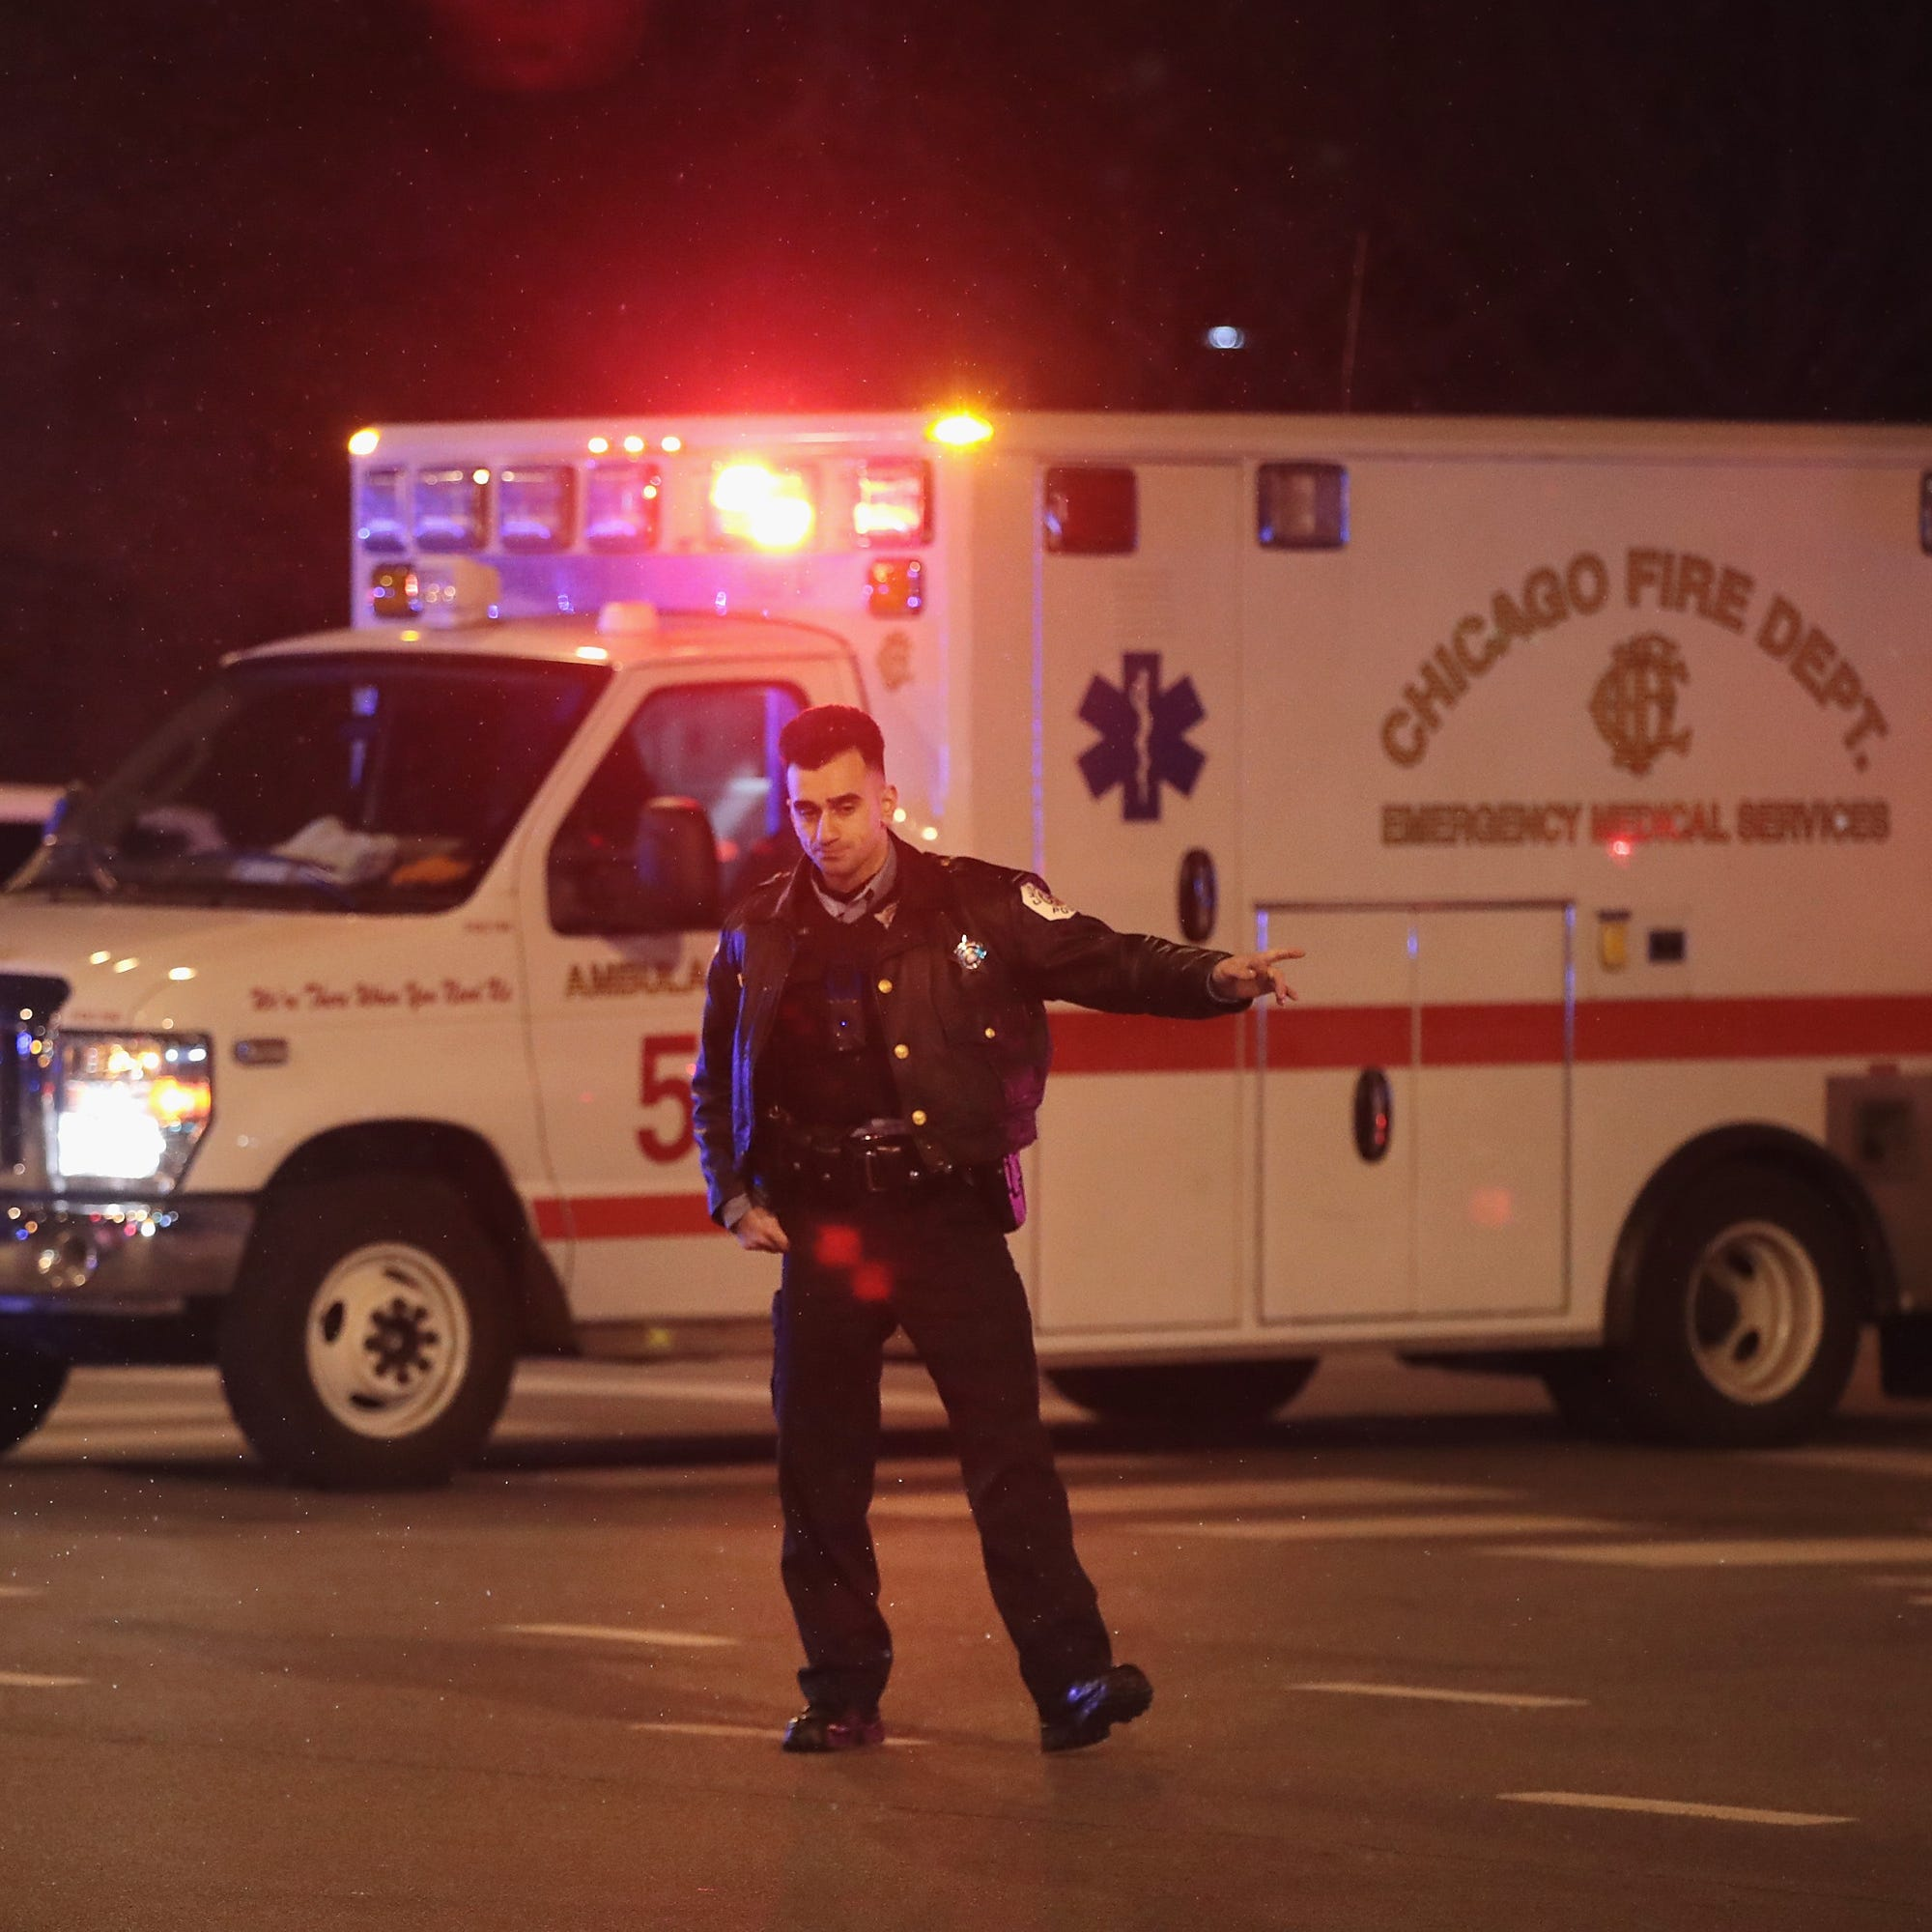 Chicago Mercy Hospital shooting: Two Purdue University graduates slain in attack